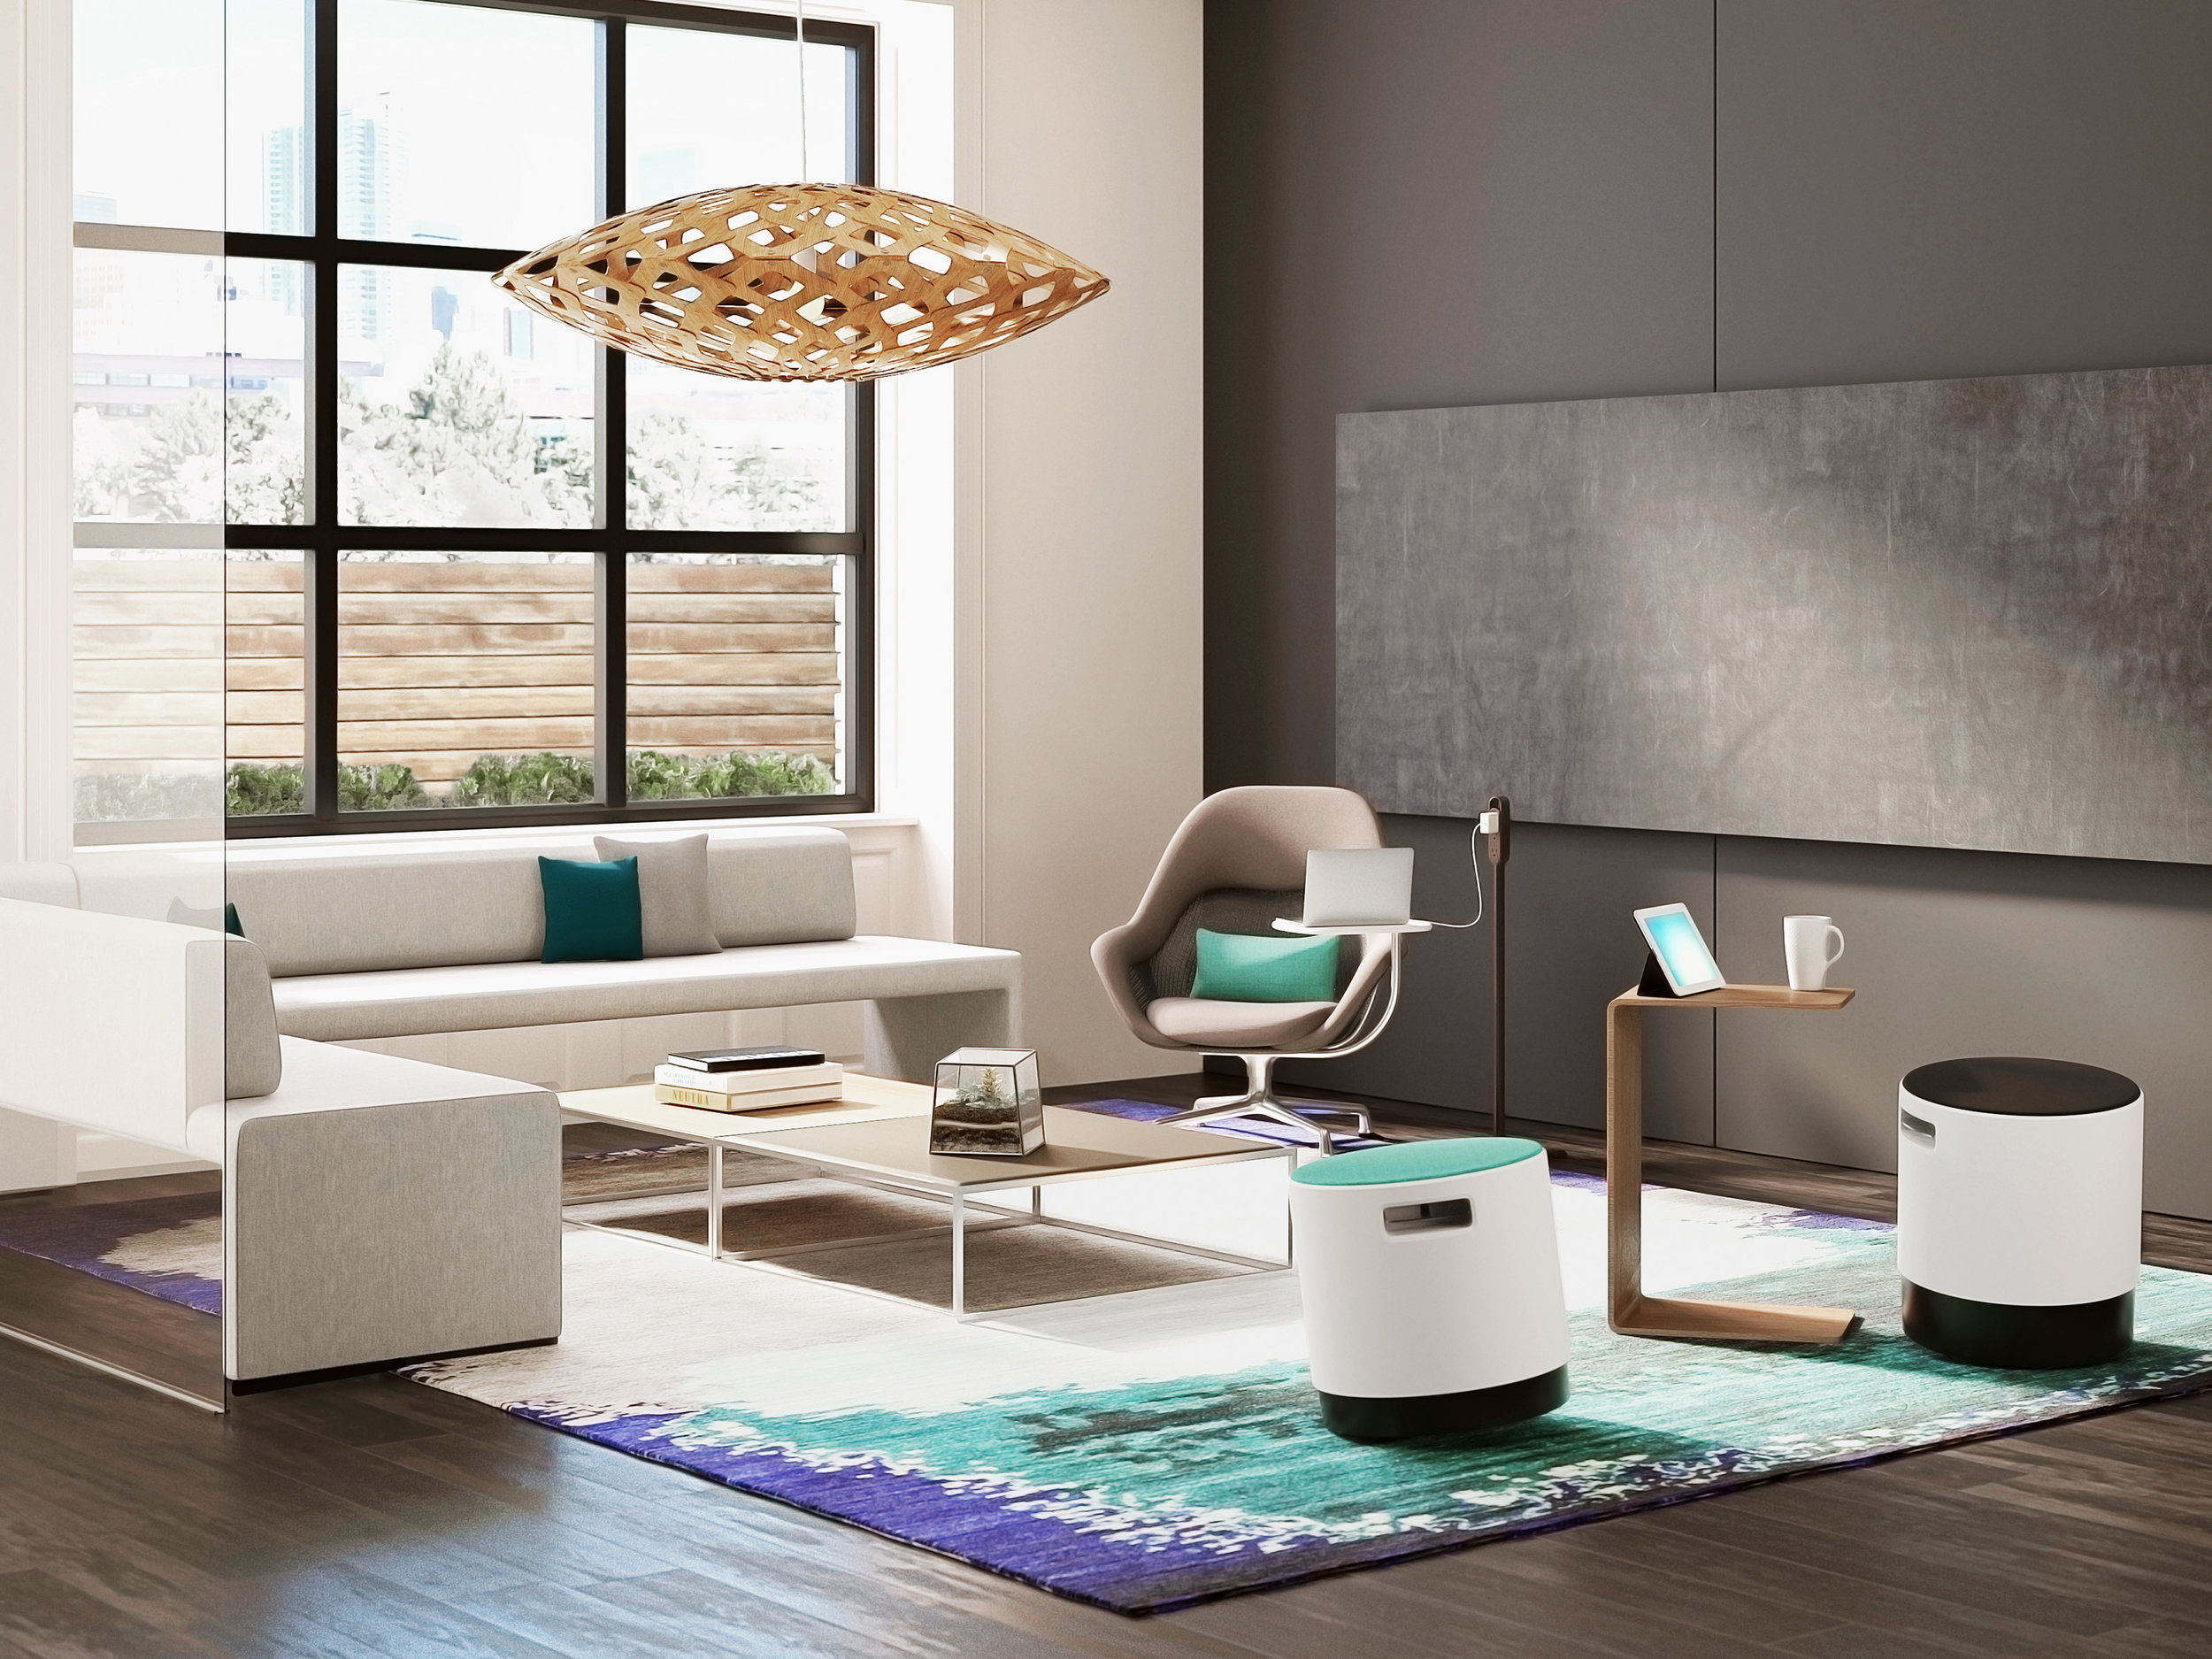 Steelcase + Hyphn - We're proud to be a Steelcase Partner. As our most notable vendor partner, we work closely with our connections at Steelcase to incorporate cutting-edge pieces into our workspace designs. The foundation of our relationship is mutual trust and alignment in our creative drives—a bedrock that will support a thriving partnership for decades to come.